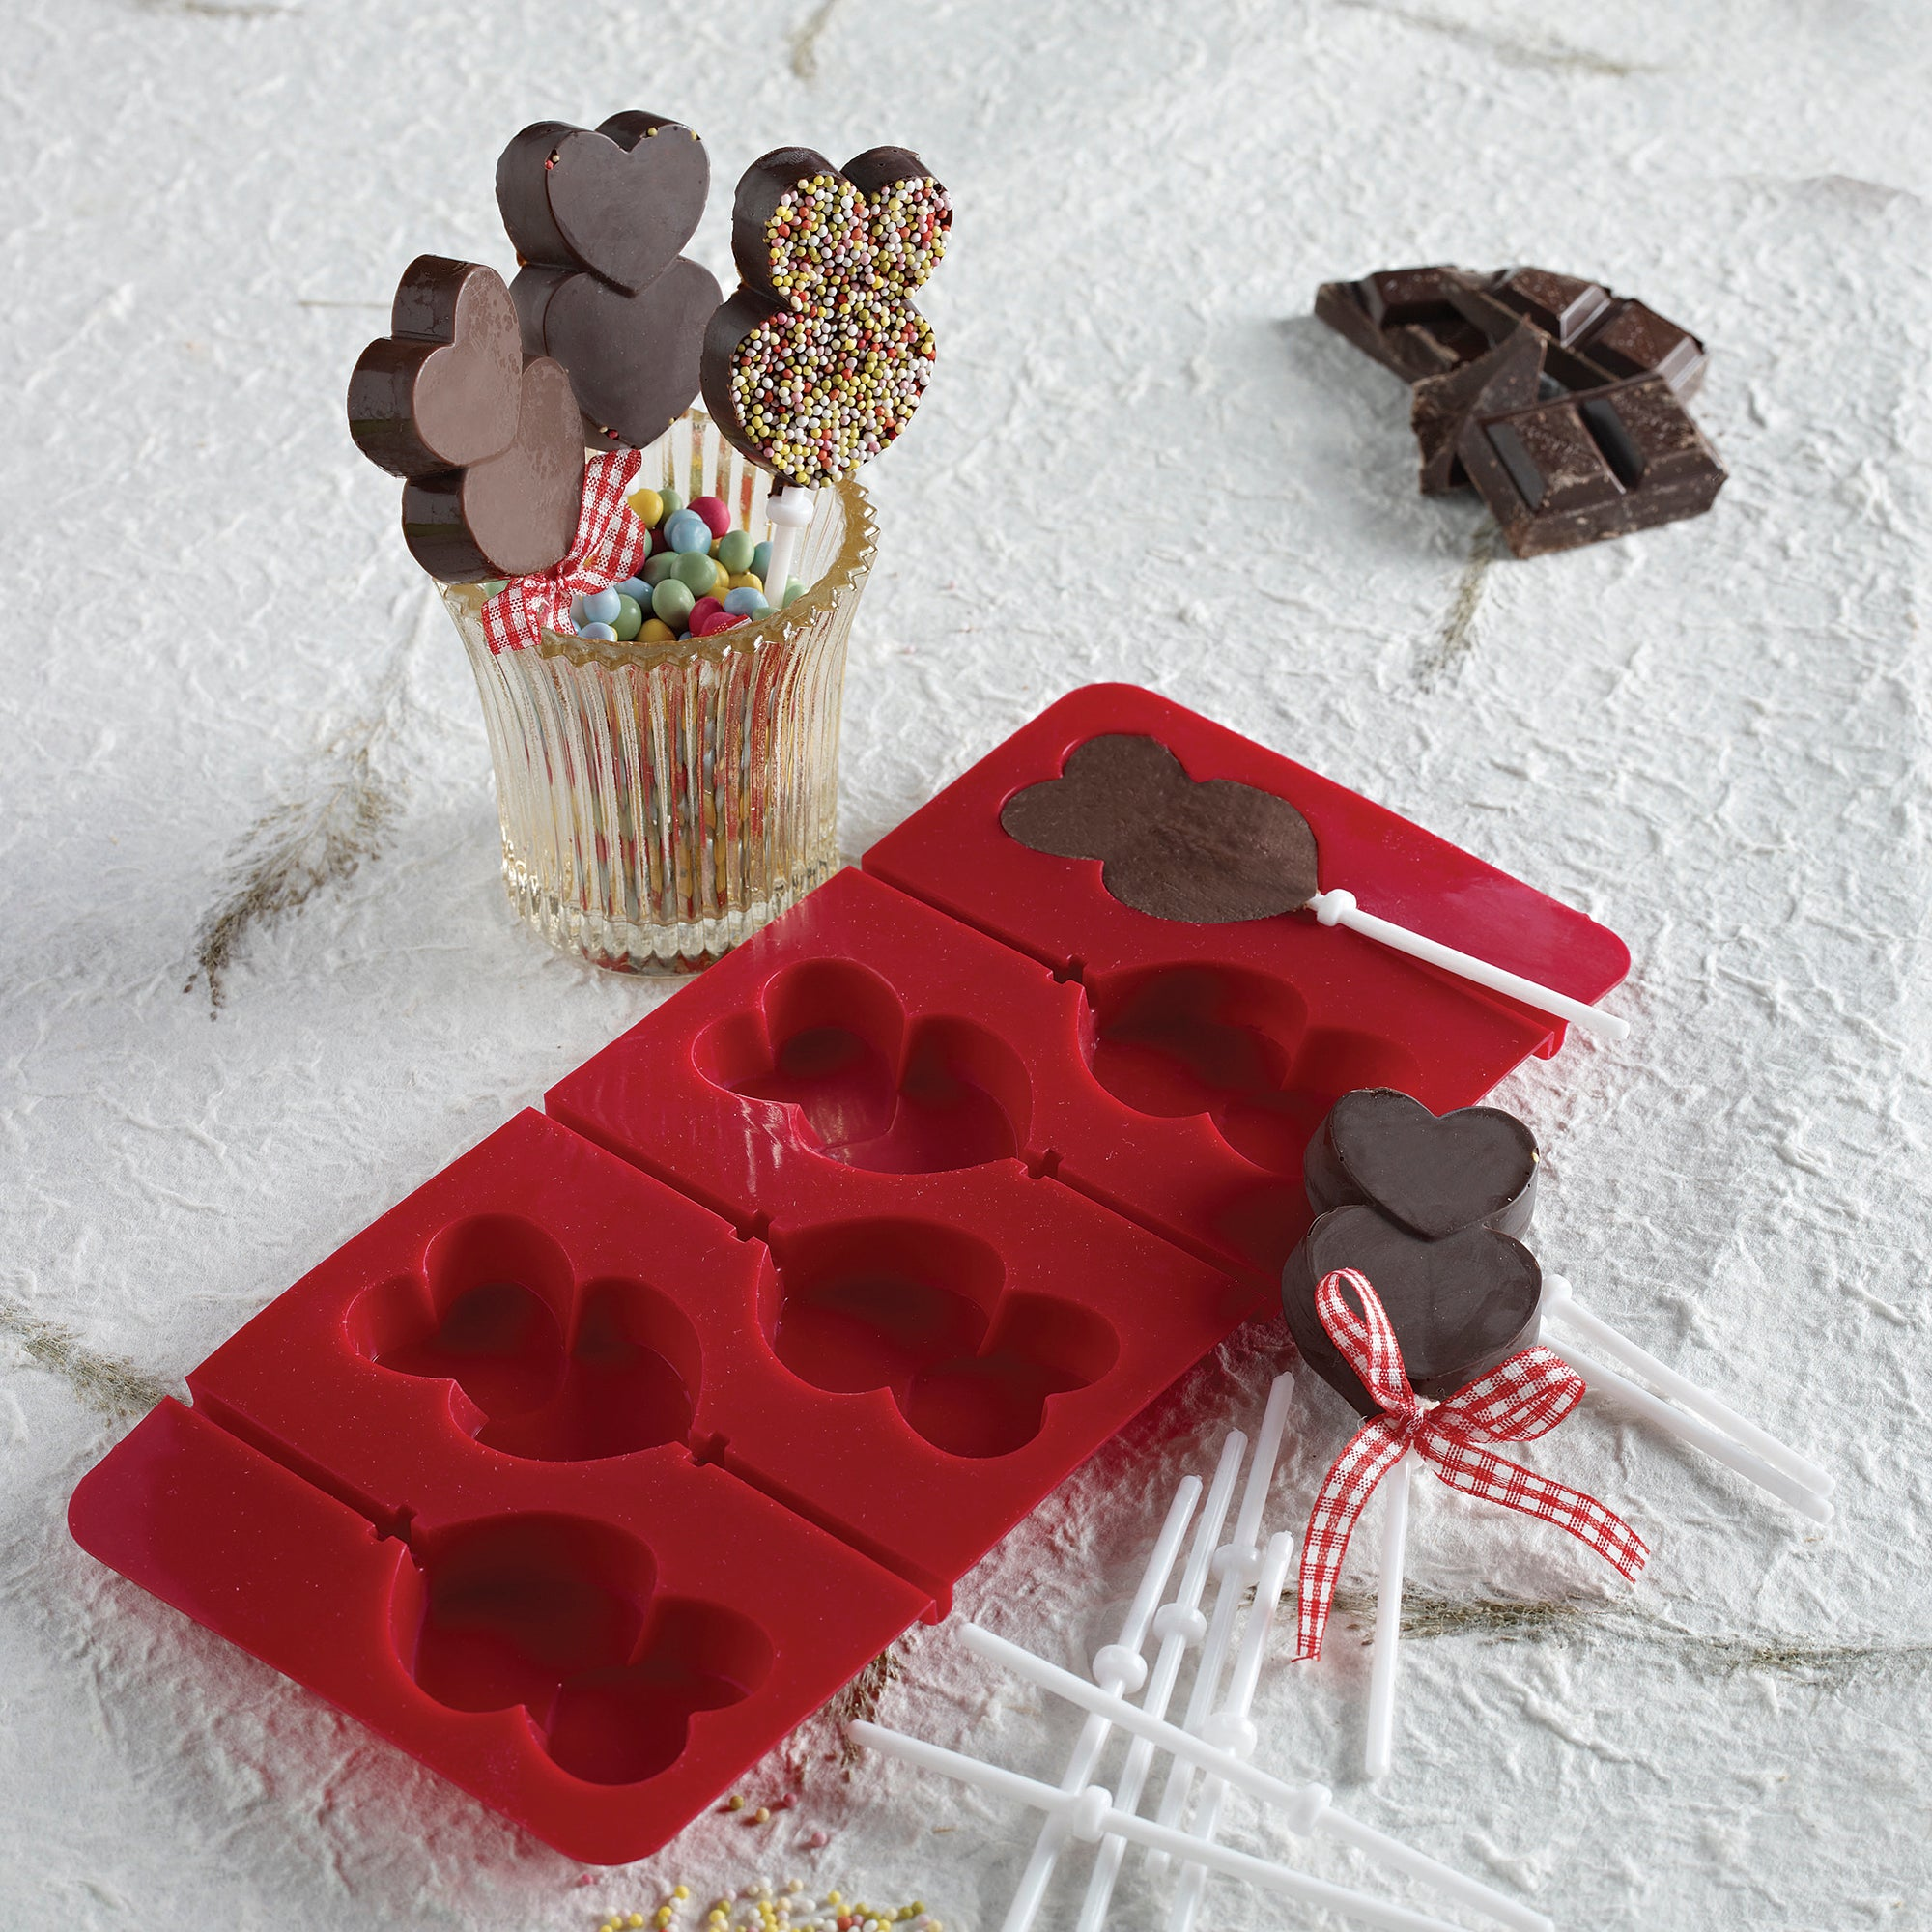 Kids 6 Cup Hearts Lollipop Silicone Mould